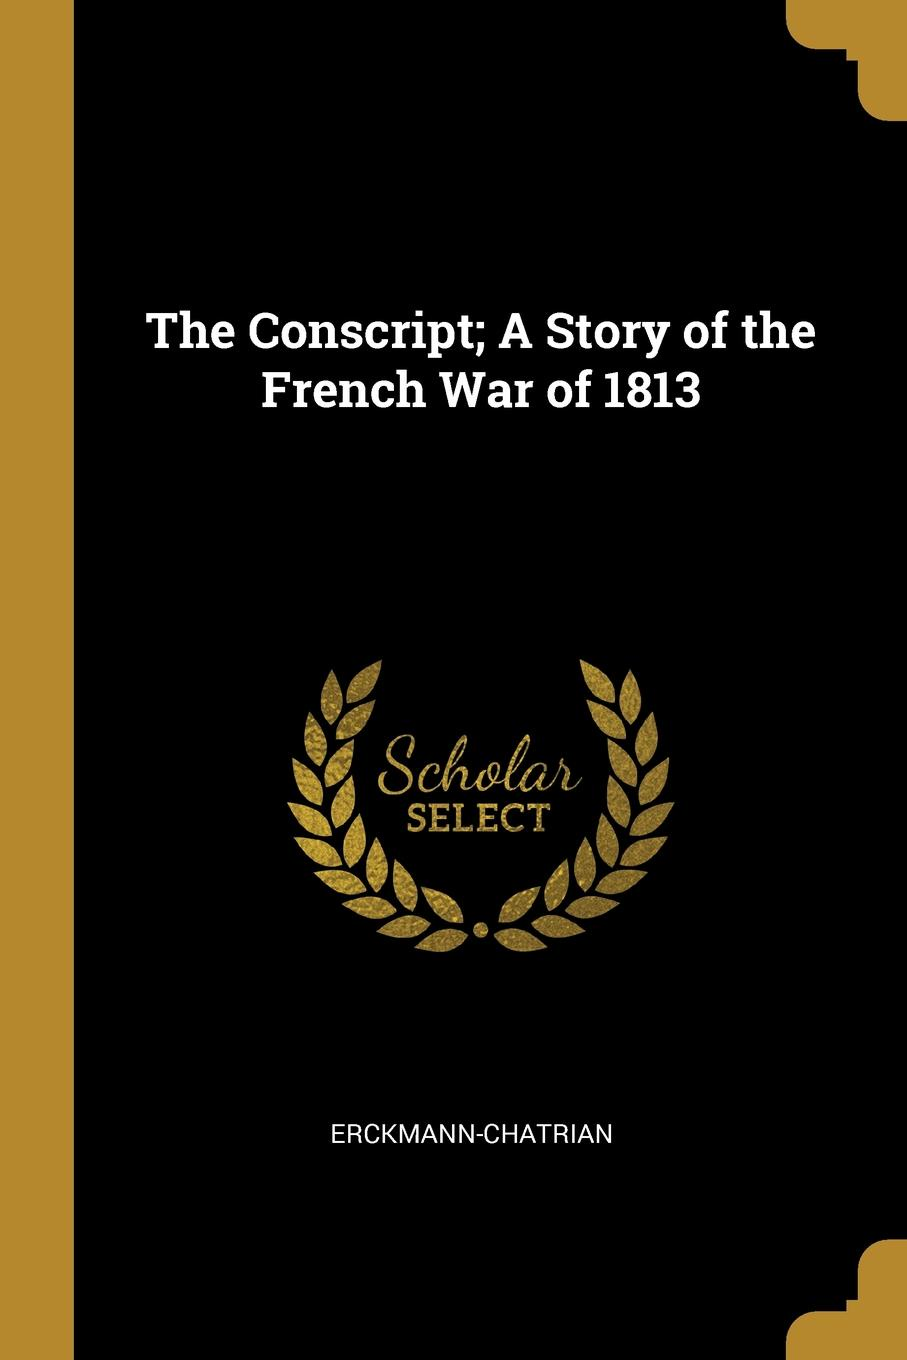 Erckmann-Chatrian. The Conscript; A Story of the French War of 1813